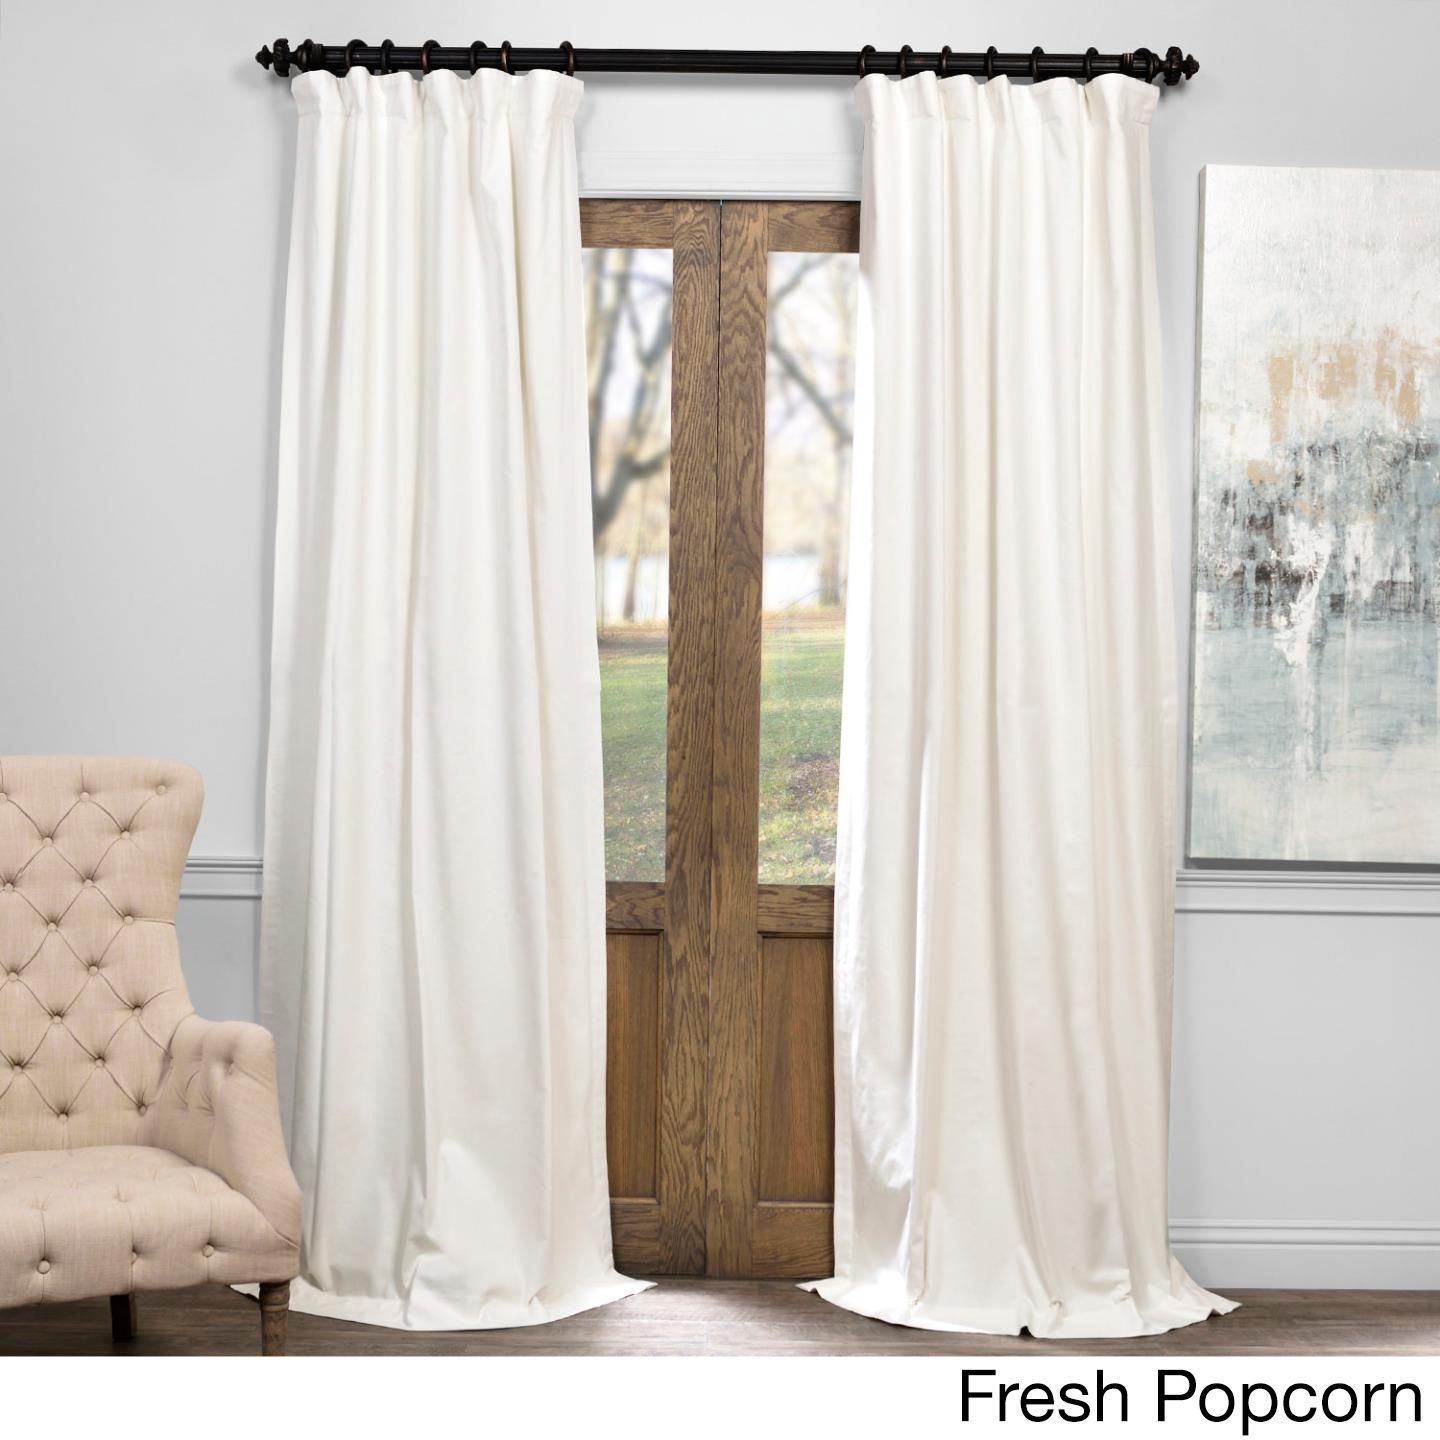 Exclusive Fabrics Solid Cotton True Blackout Curtain (fresh With Regard To Solid Cotton True Blackout Curtain Panels (View 10 of 30)